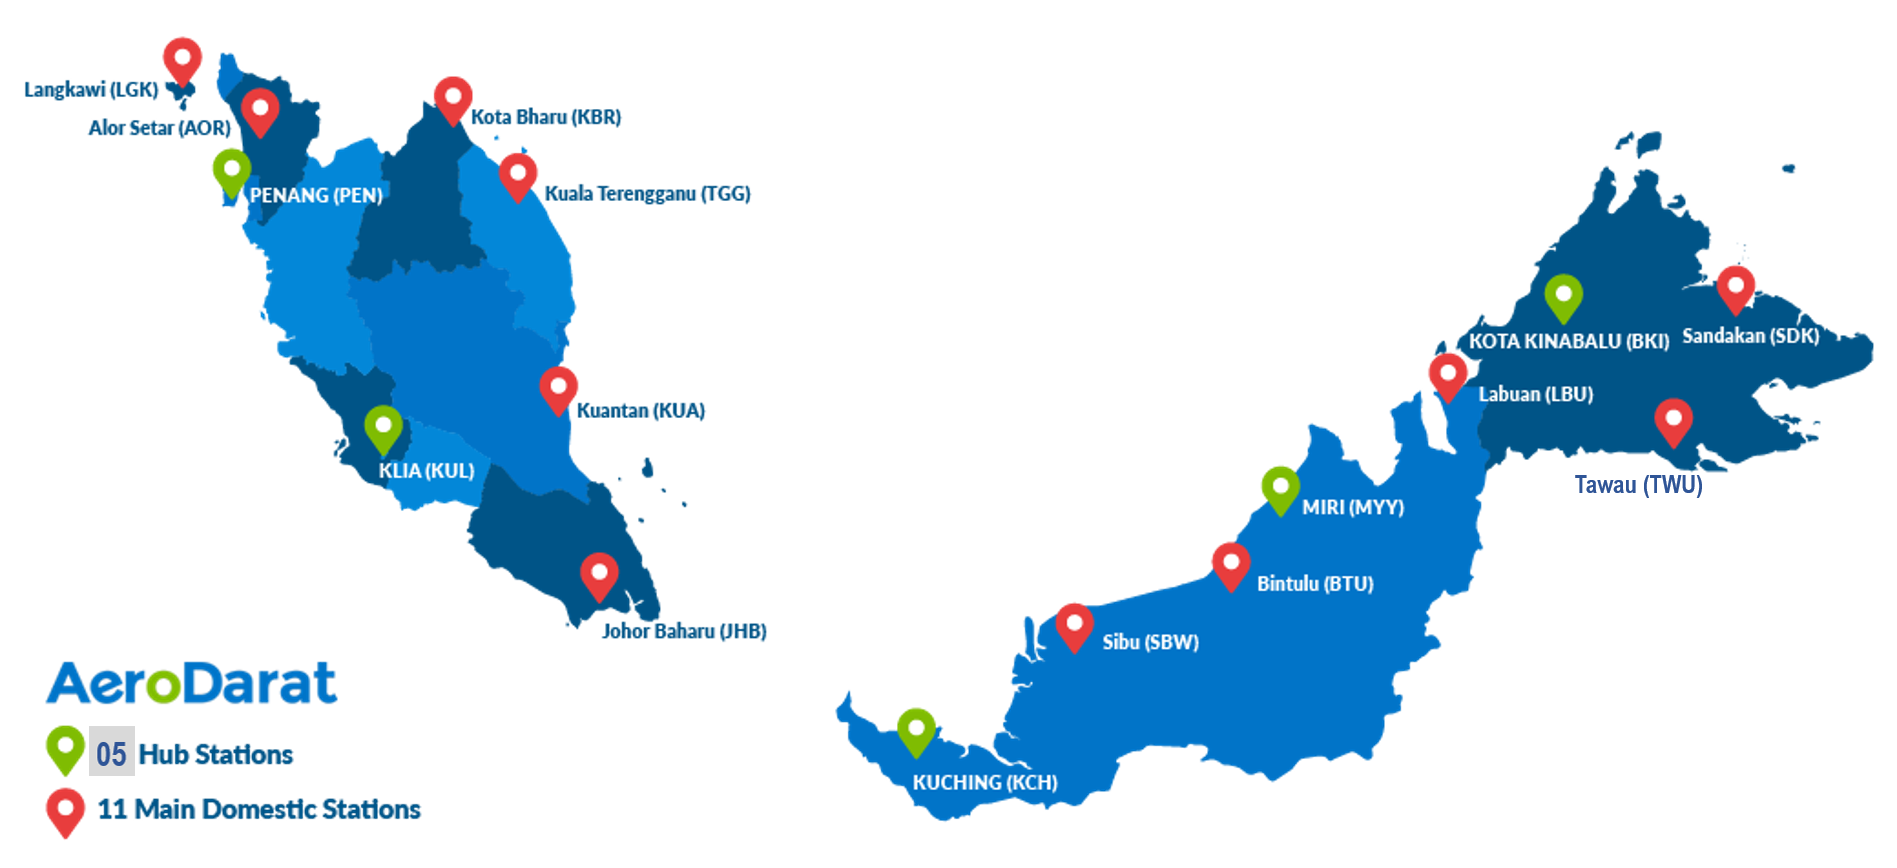 http://www.aerodarat.com/wp-content/uploads/2018/10/Our-Locations-Revised.png